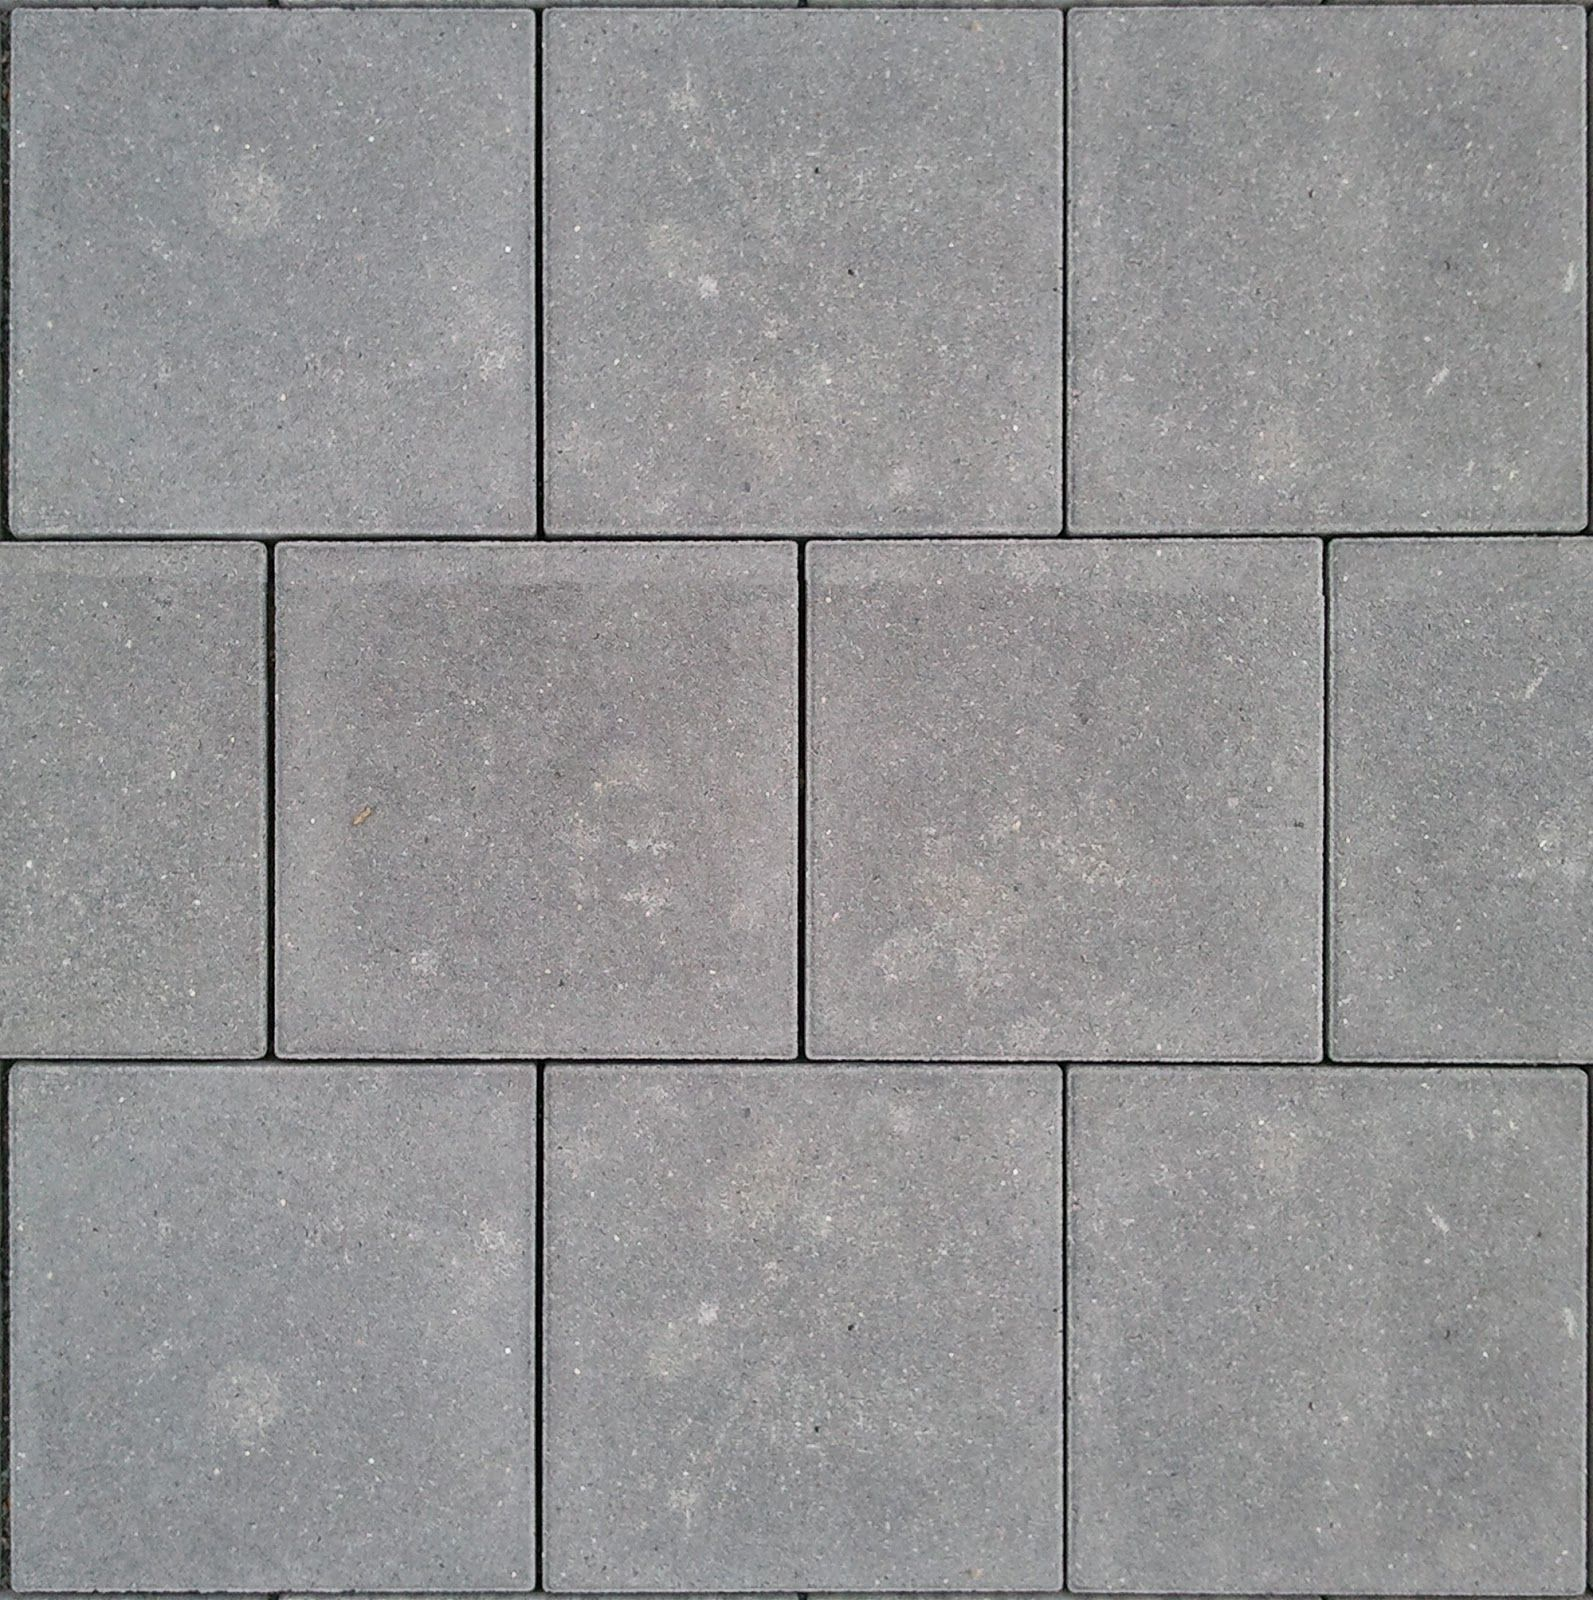 Public Domain Texturespublic Domainfree Textures Public Domain Images Texture Of Gray Seamless Concrete Pavement